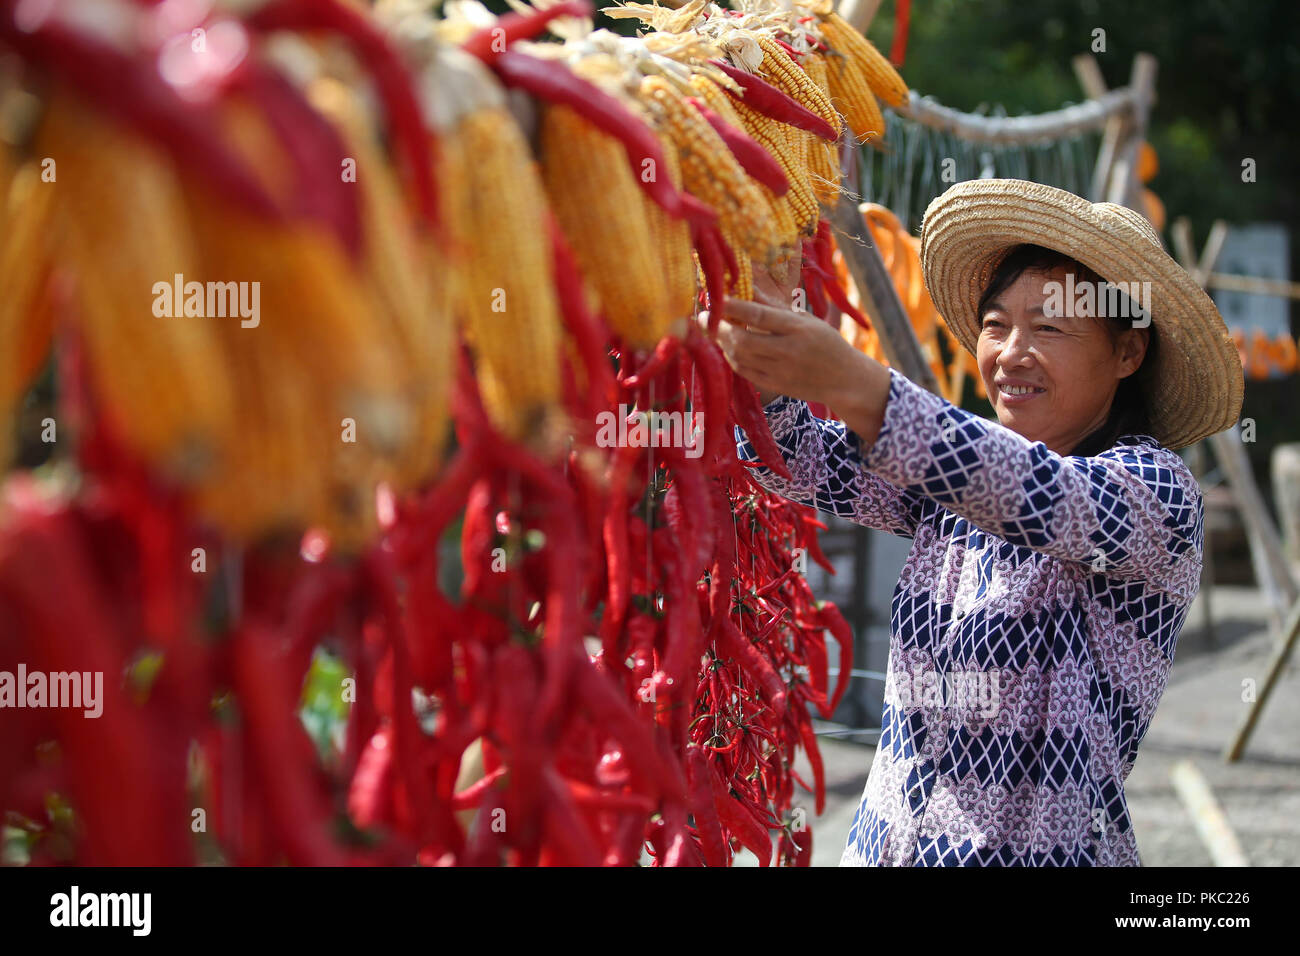 Huangshan, China's Anhui Province. 12th Sep, 2018. A villager airs chillies and corns at Chengkan Ancient Village in the city of Huangshan, east China's Anhui Province, on Sept. 12, 2018. Credit: Shi Yalei/Xinhua/Alamy Live News - Stock Image